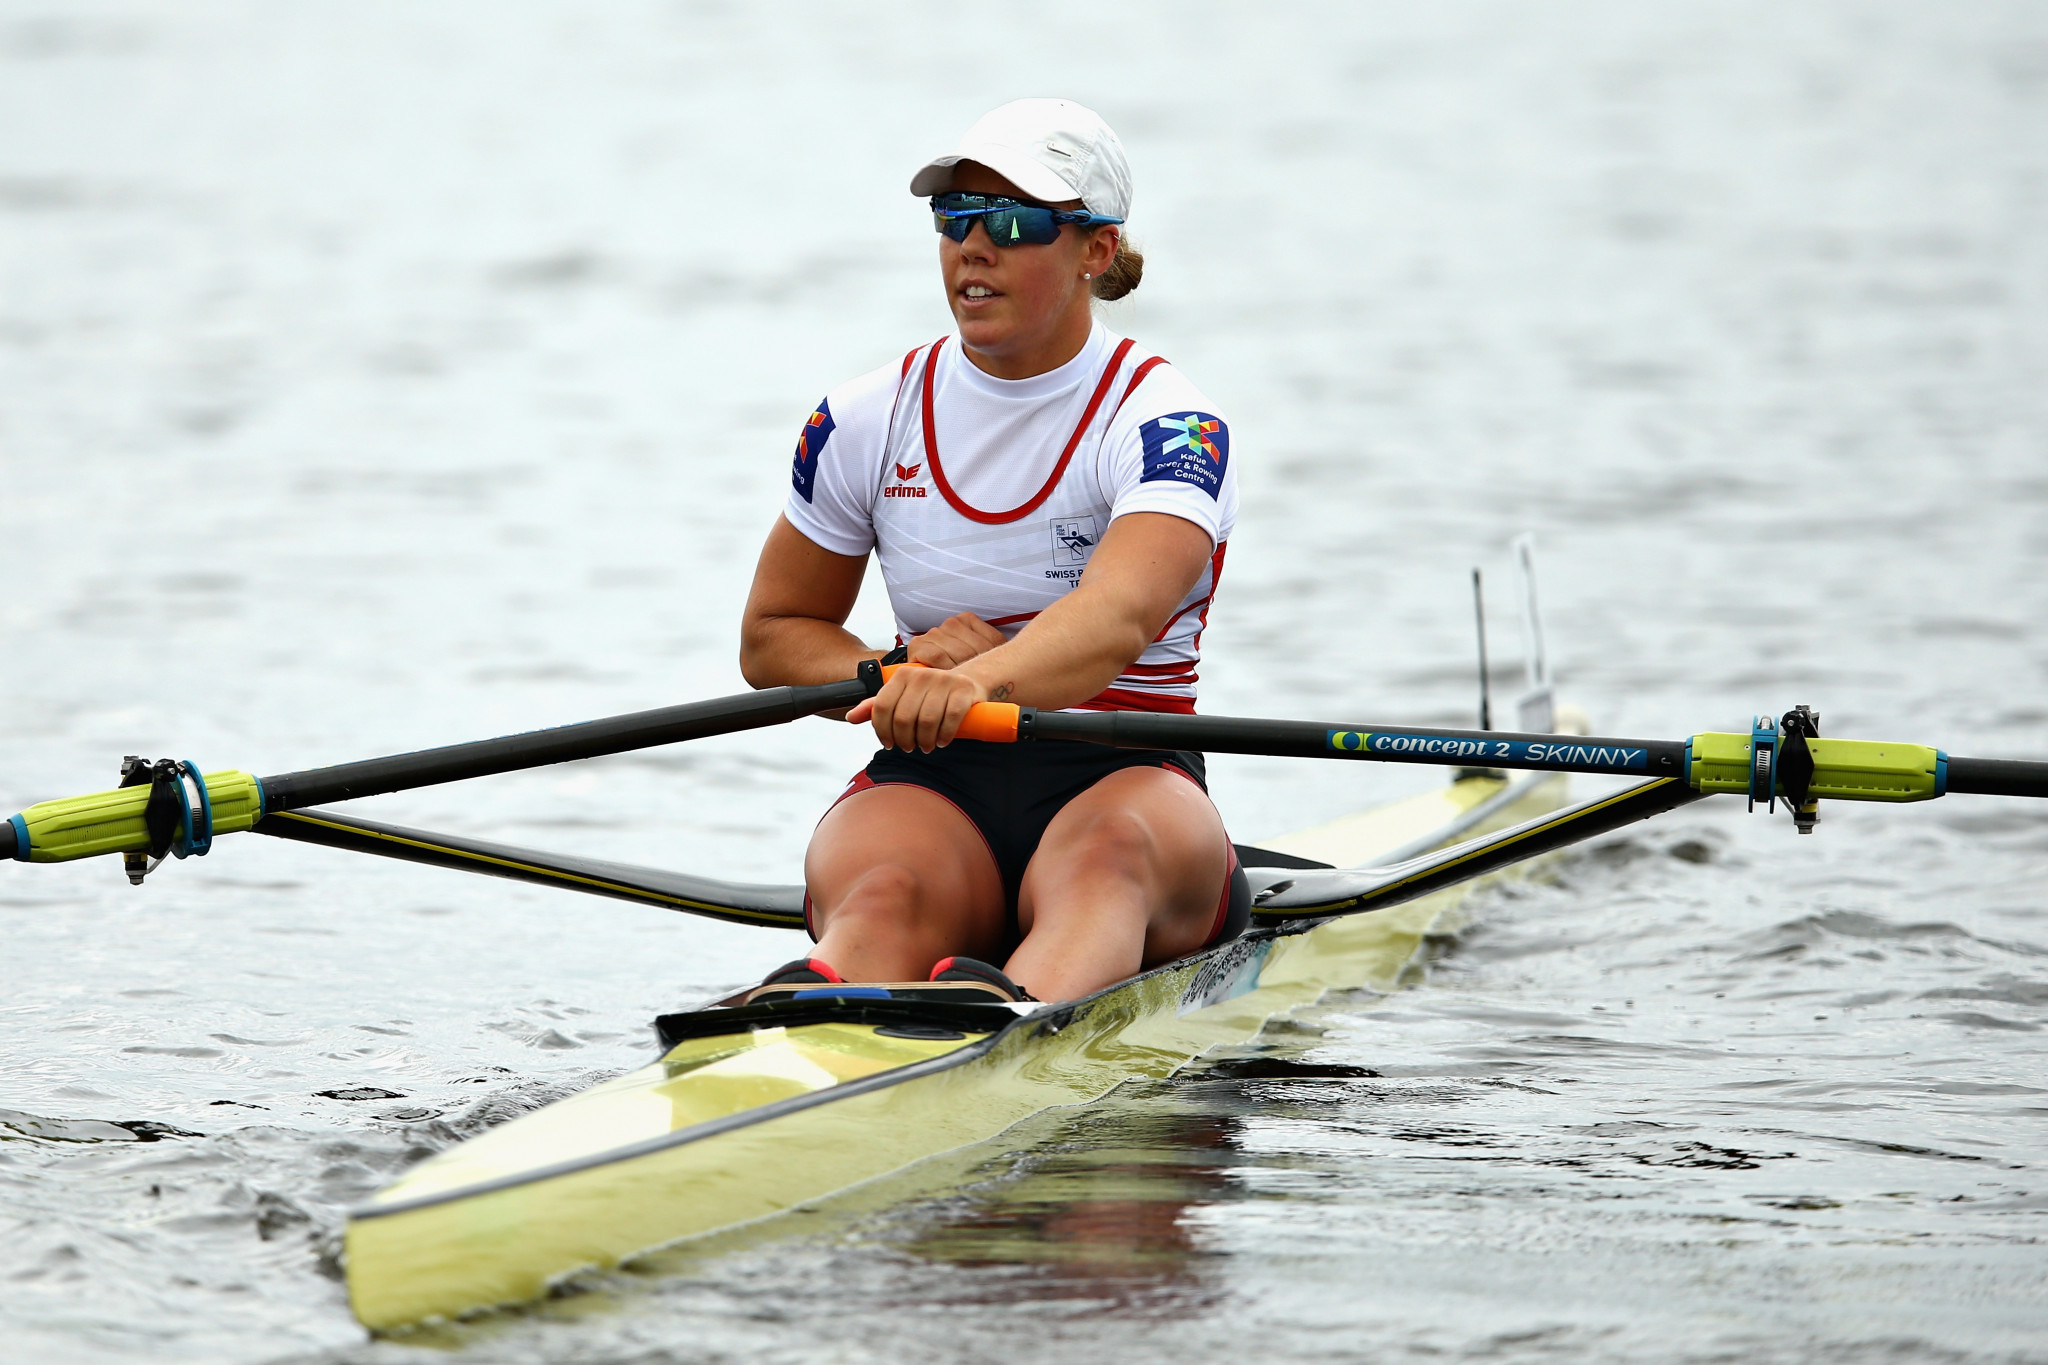 Jeannine Gmelin of Switzerland will have high hopes of retaining her European single sculls title on her home waters of Rotsee tomorrow ©Getty Images